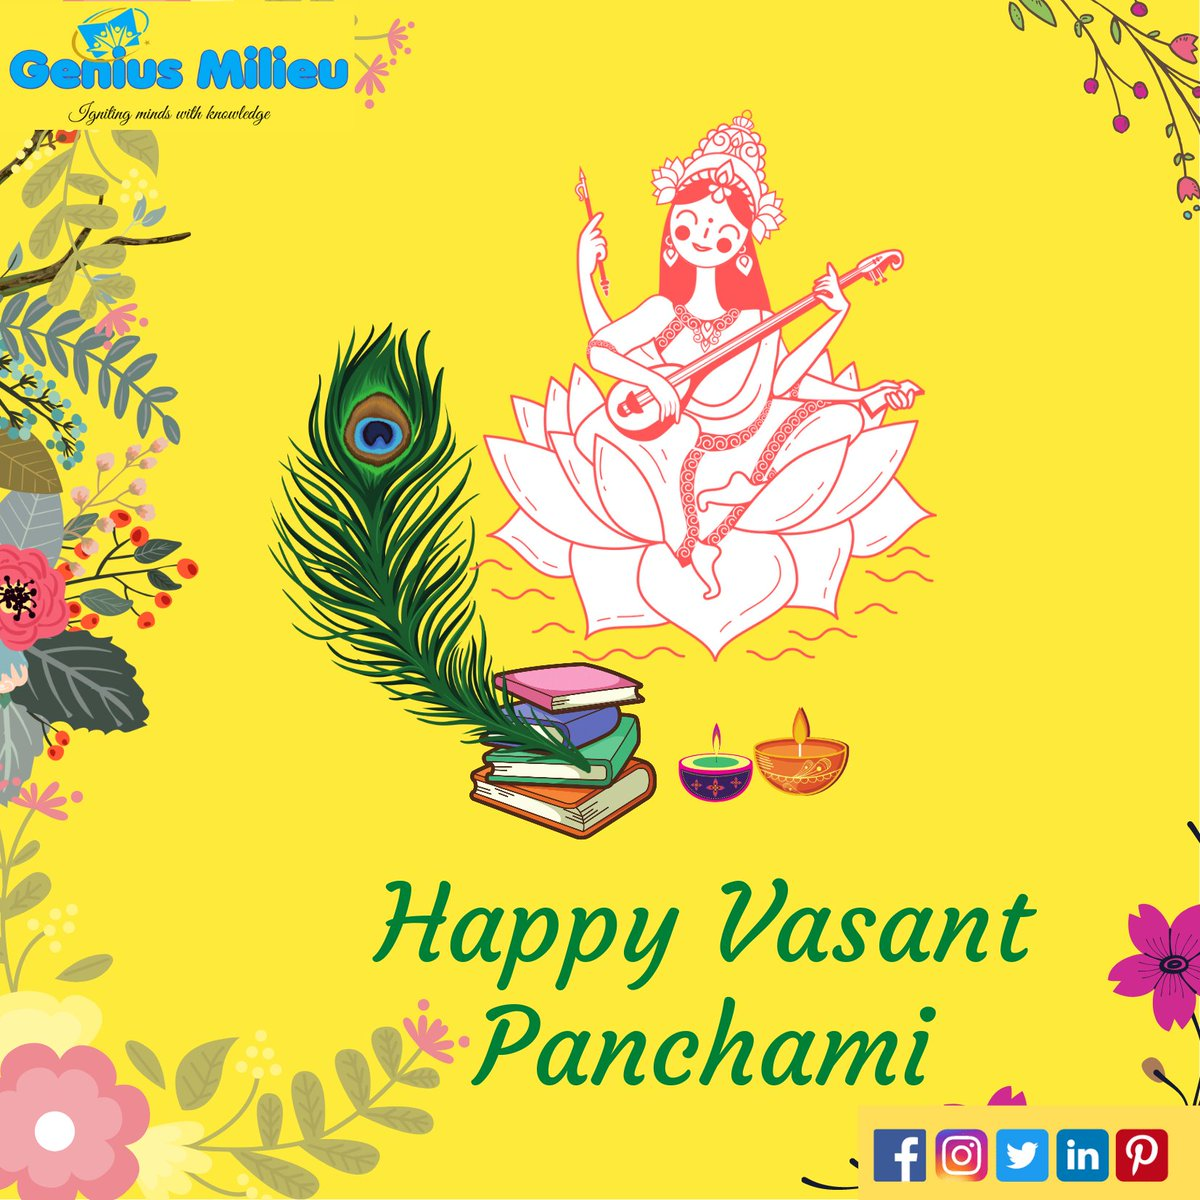 May the Goddess Saraswati bless you with knowledge and wisdom!🍀💛  🕊️🌄🌾  🌿Wishing you a 2021 blissful Vasant Panchami!🍃 #vasantpanchami #happyvasantpanchami #happyvasantpanchmi2021 #vasantpanchami2021🌻🌼 #basantpanchami #happybasantpachami🌹🌷💕🌼👏 #flowers #sitar #music